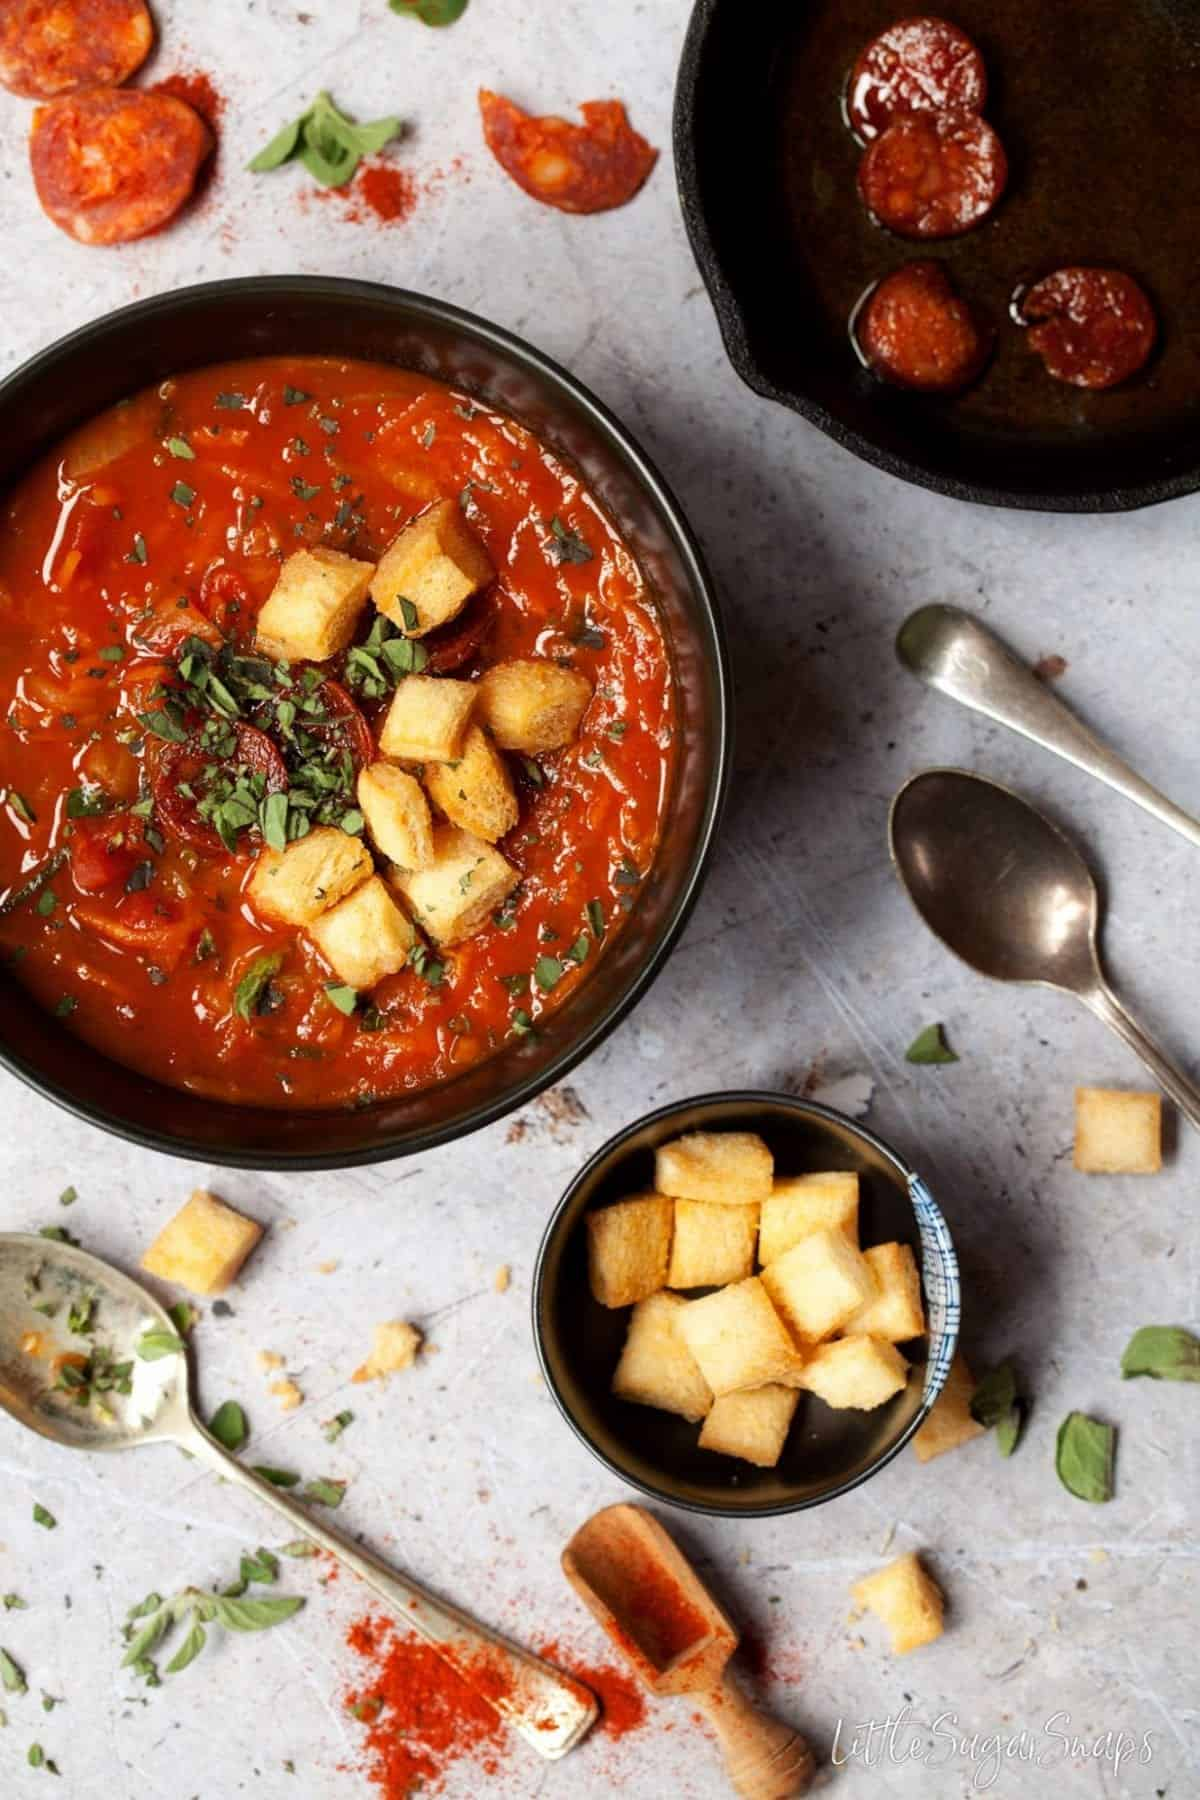 Hearty Carrot & Courgette Soup with Paprika